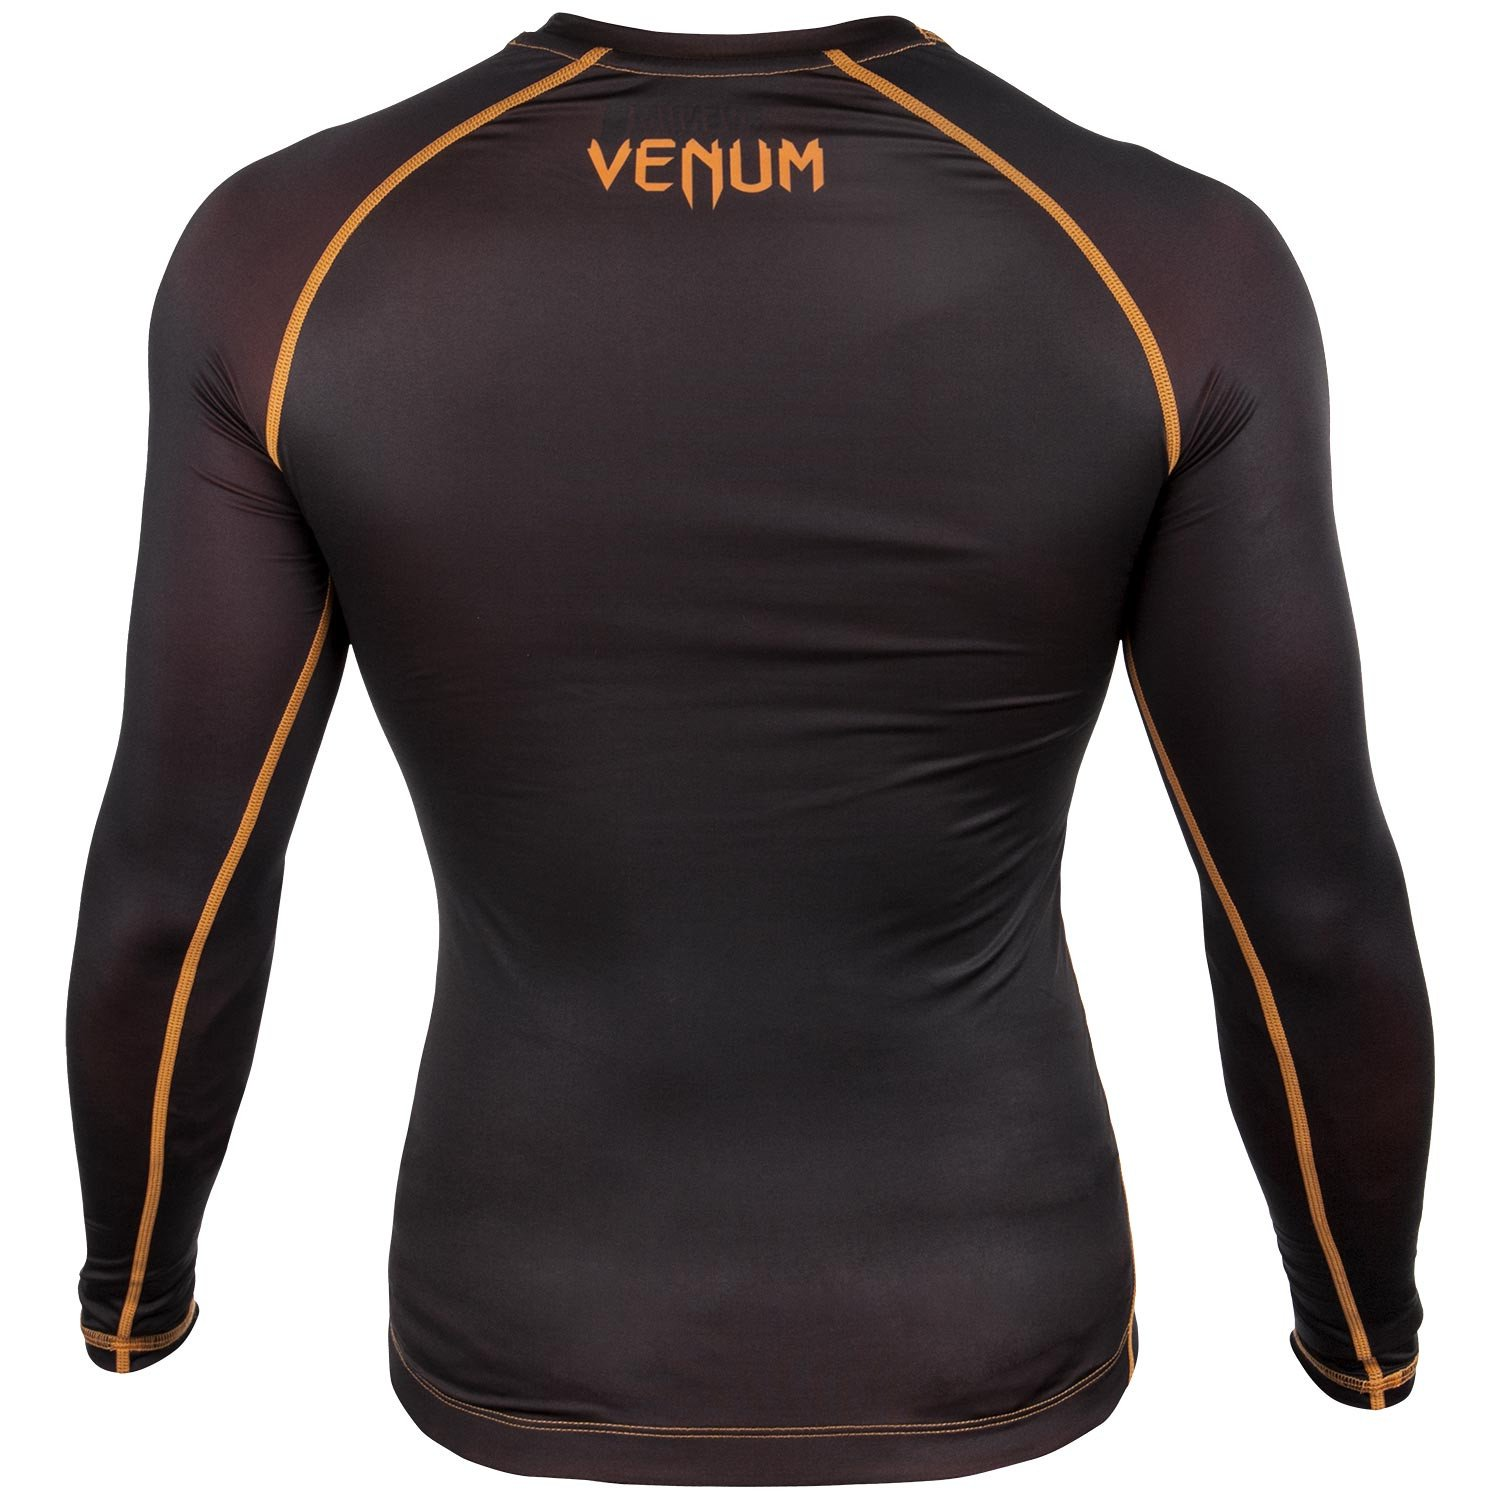 Рашгард Venum Contender 3.0 Compression Long оранжевый